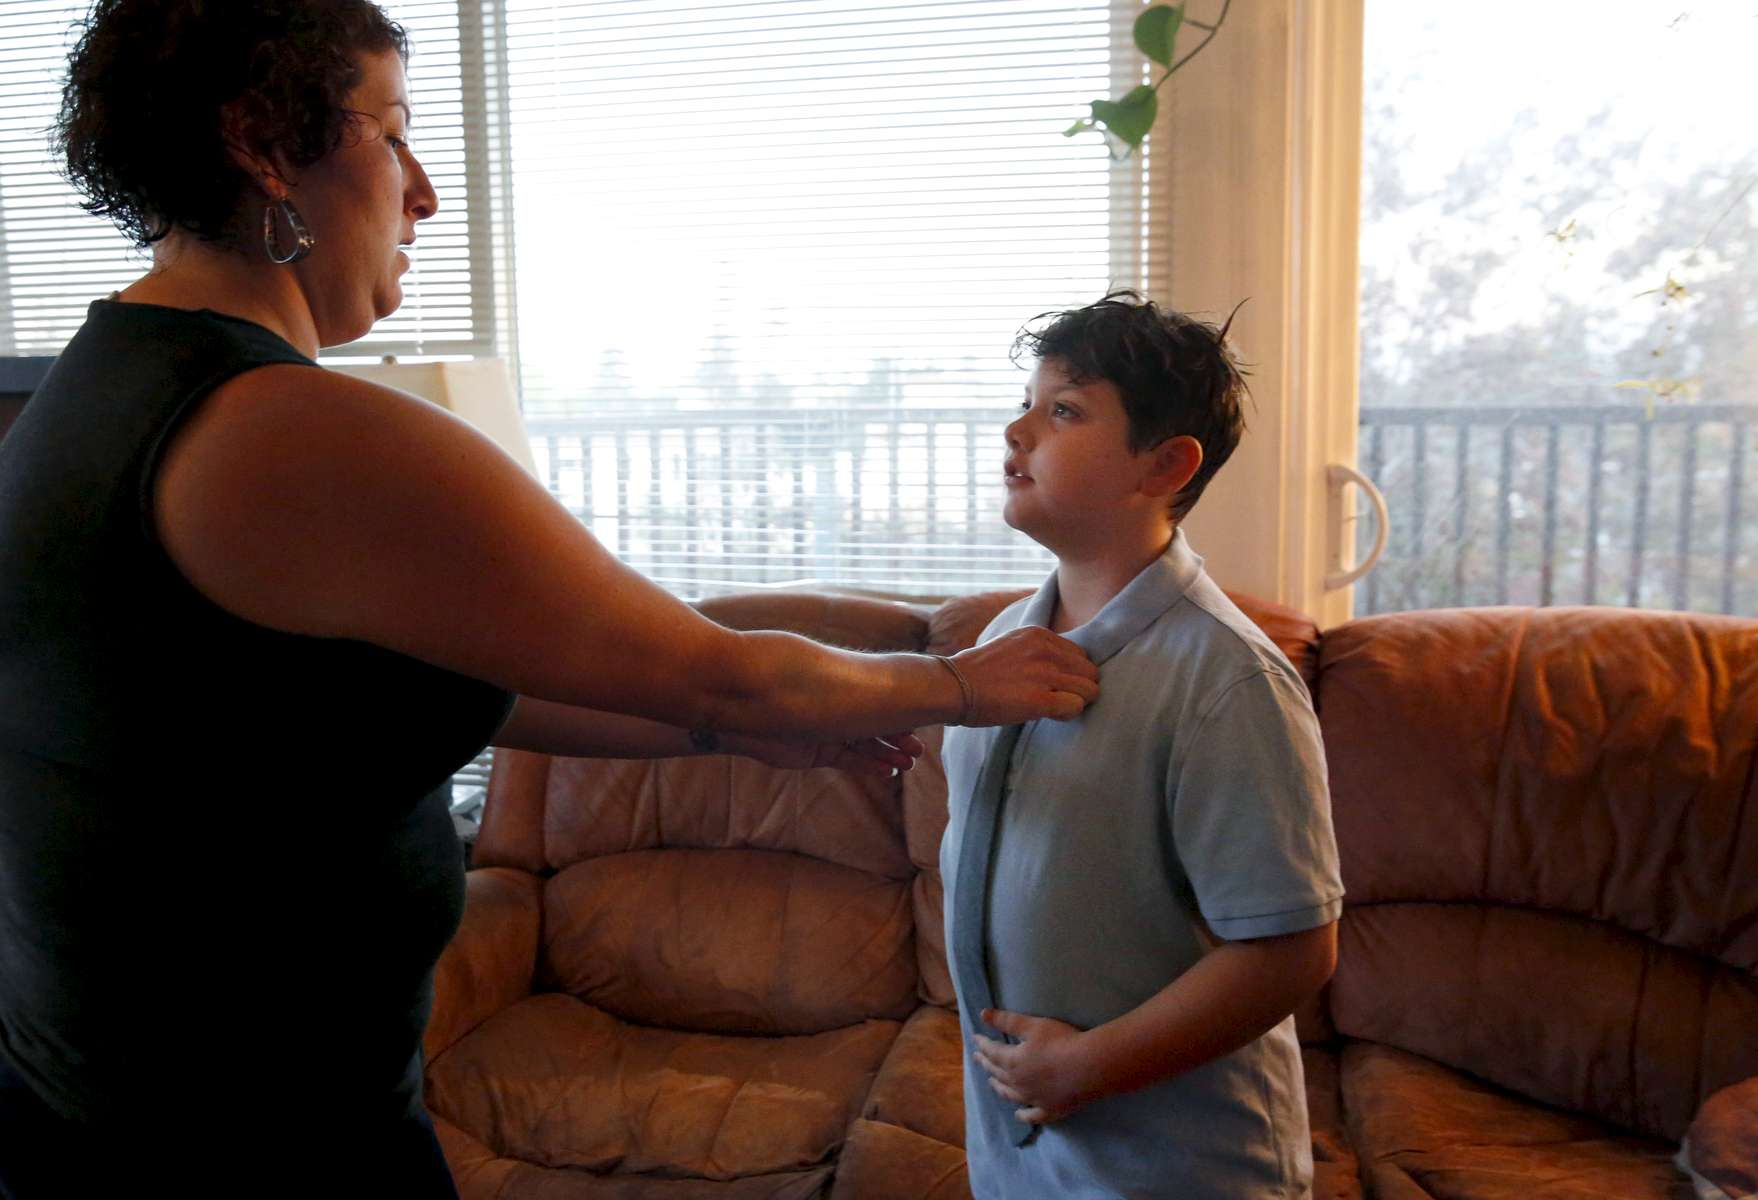 Sara Kaplan helps do her son James', 8, tie as he gets ready for his first day of school August 30, 2016 in Berkeley, Calif. James originally wanted to wear a suit on his first day but his parents talked him down to a polo shirt and tie.